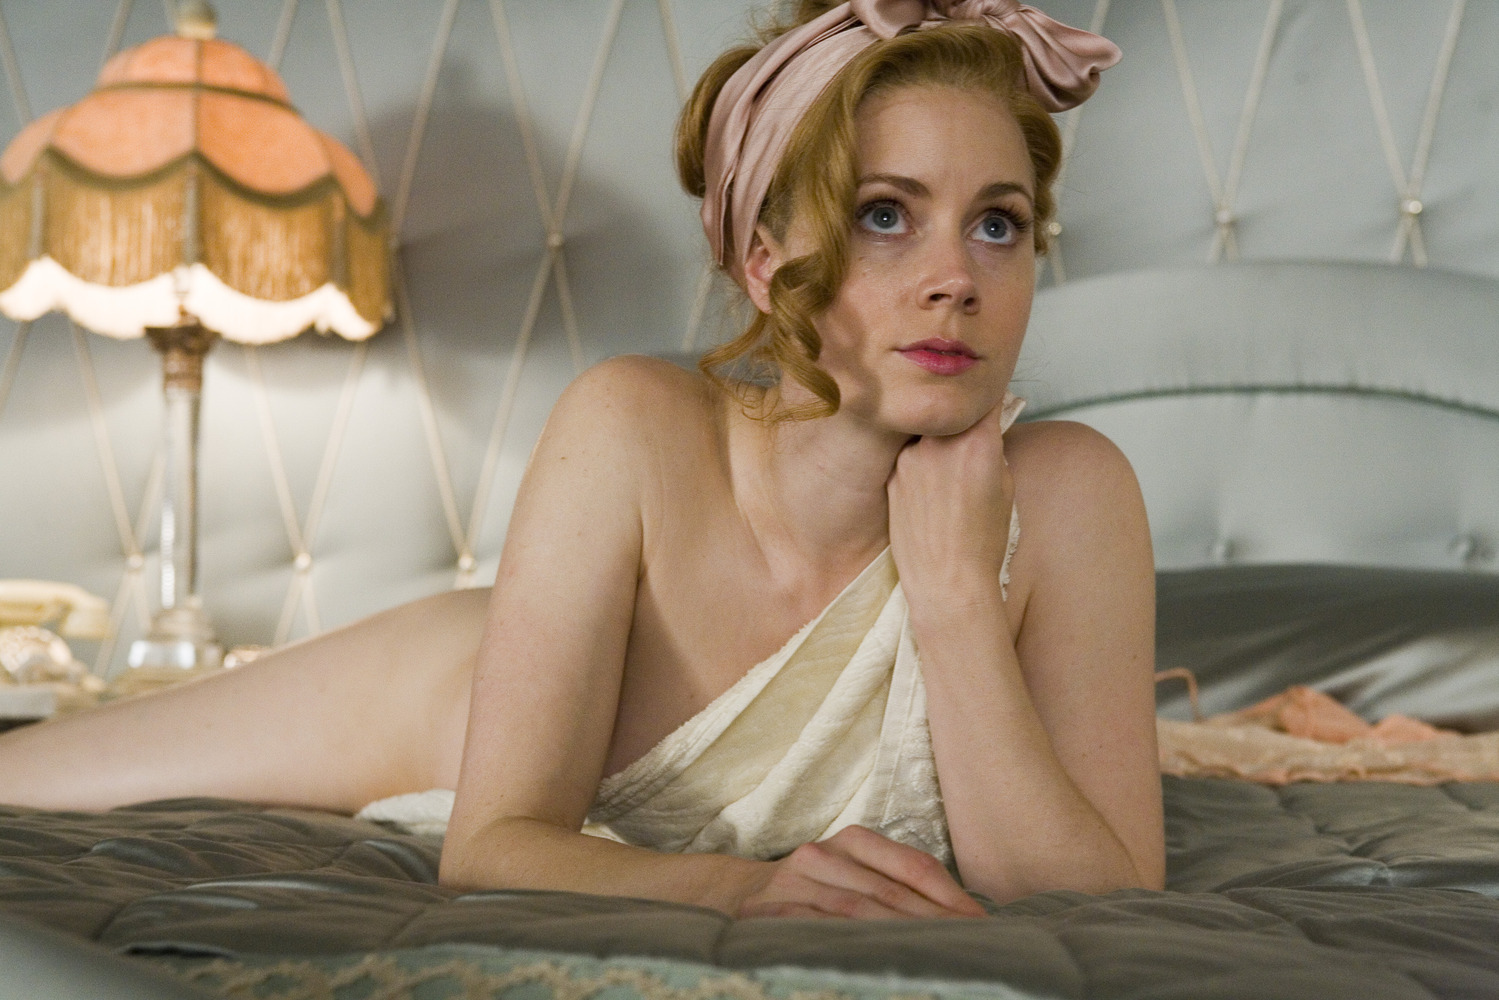 Amy Adams Desnuda amy adams hot pics, leaked bikini photoshoots - beautiful